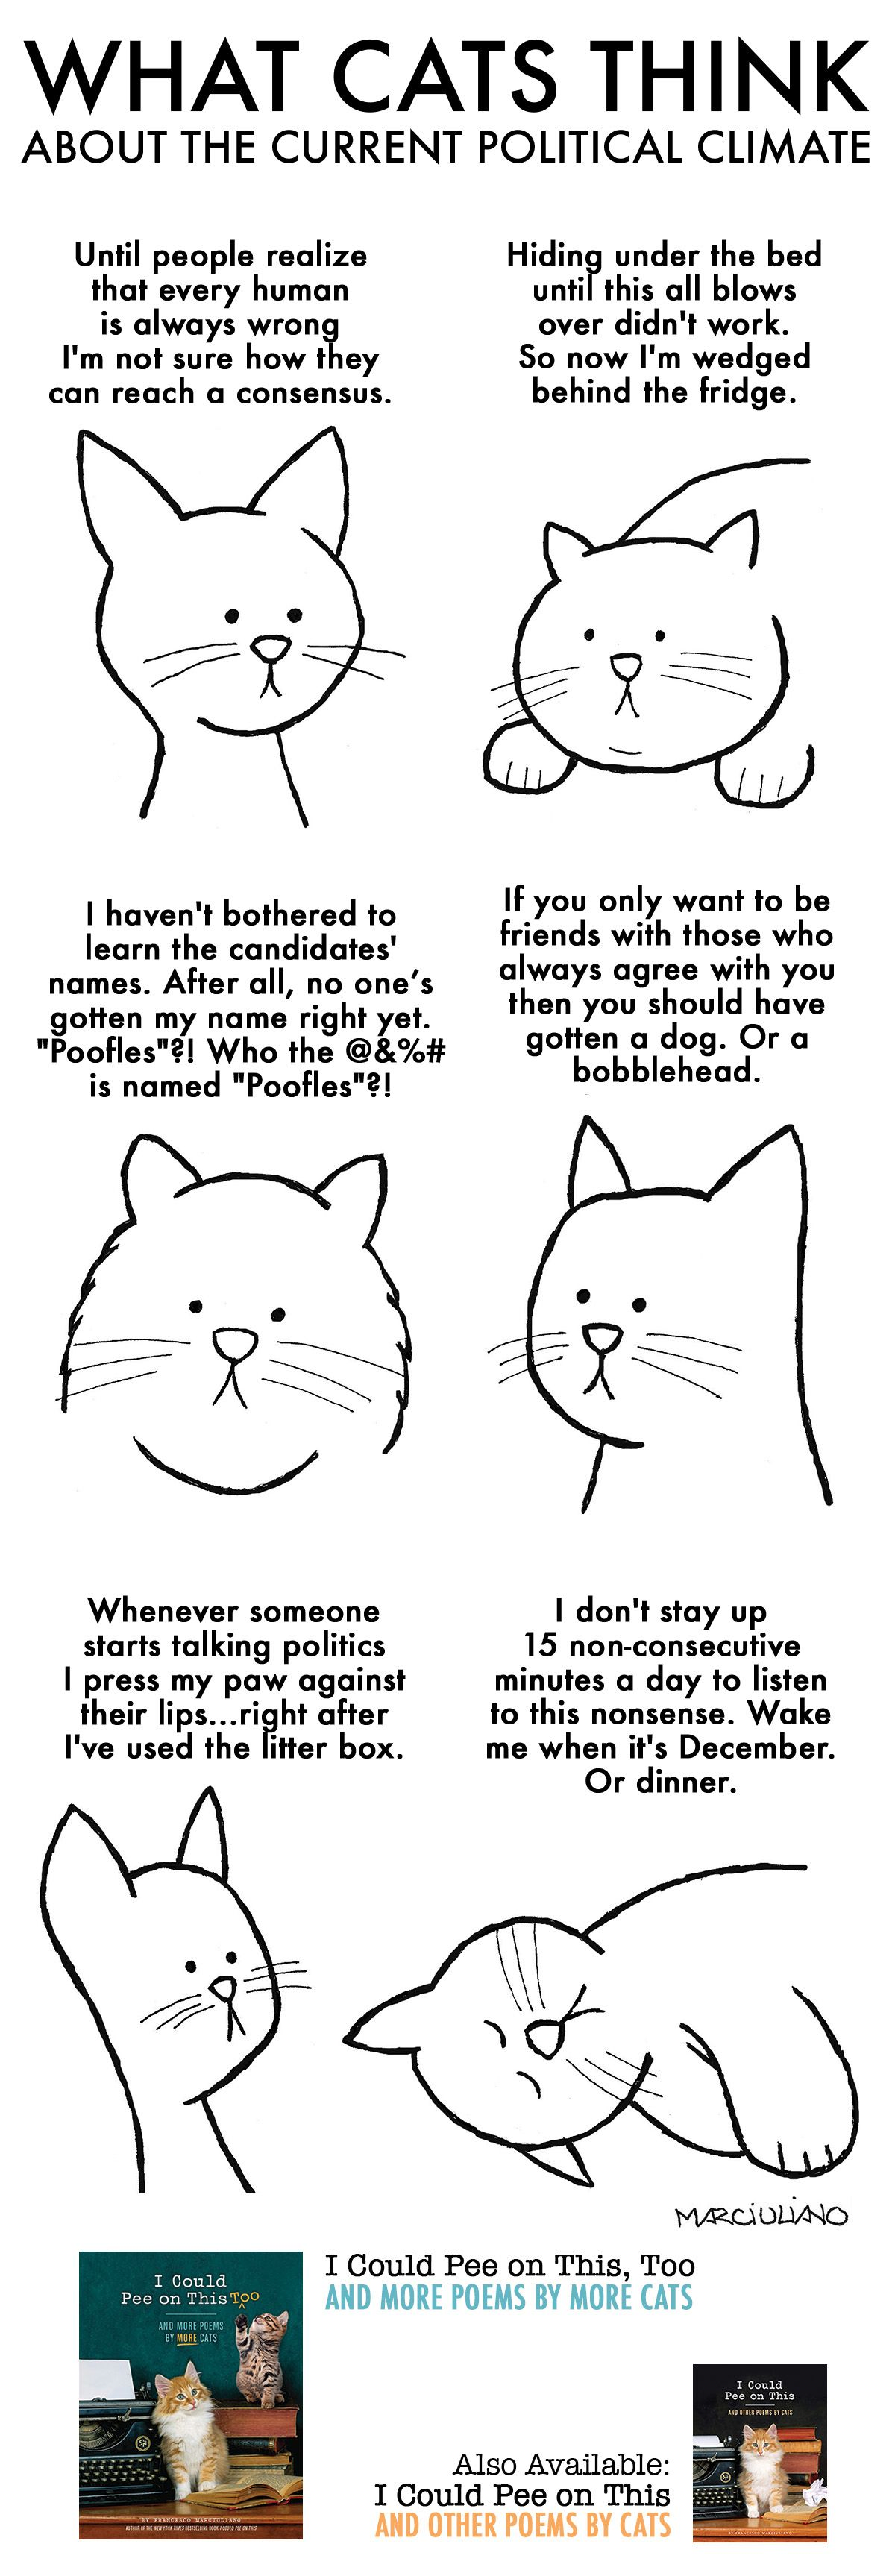 What Cats Think about the Current Political Climate